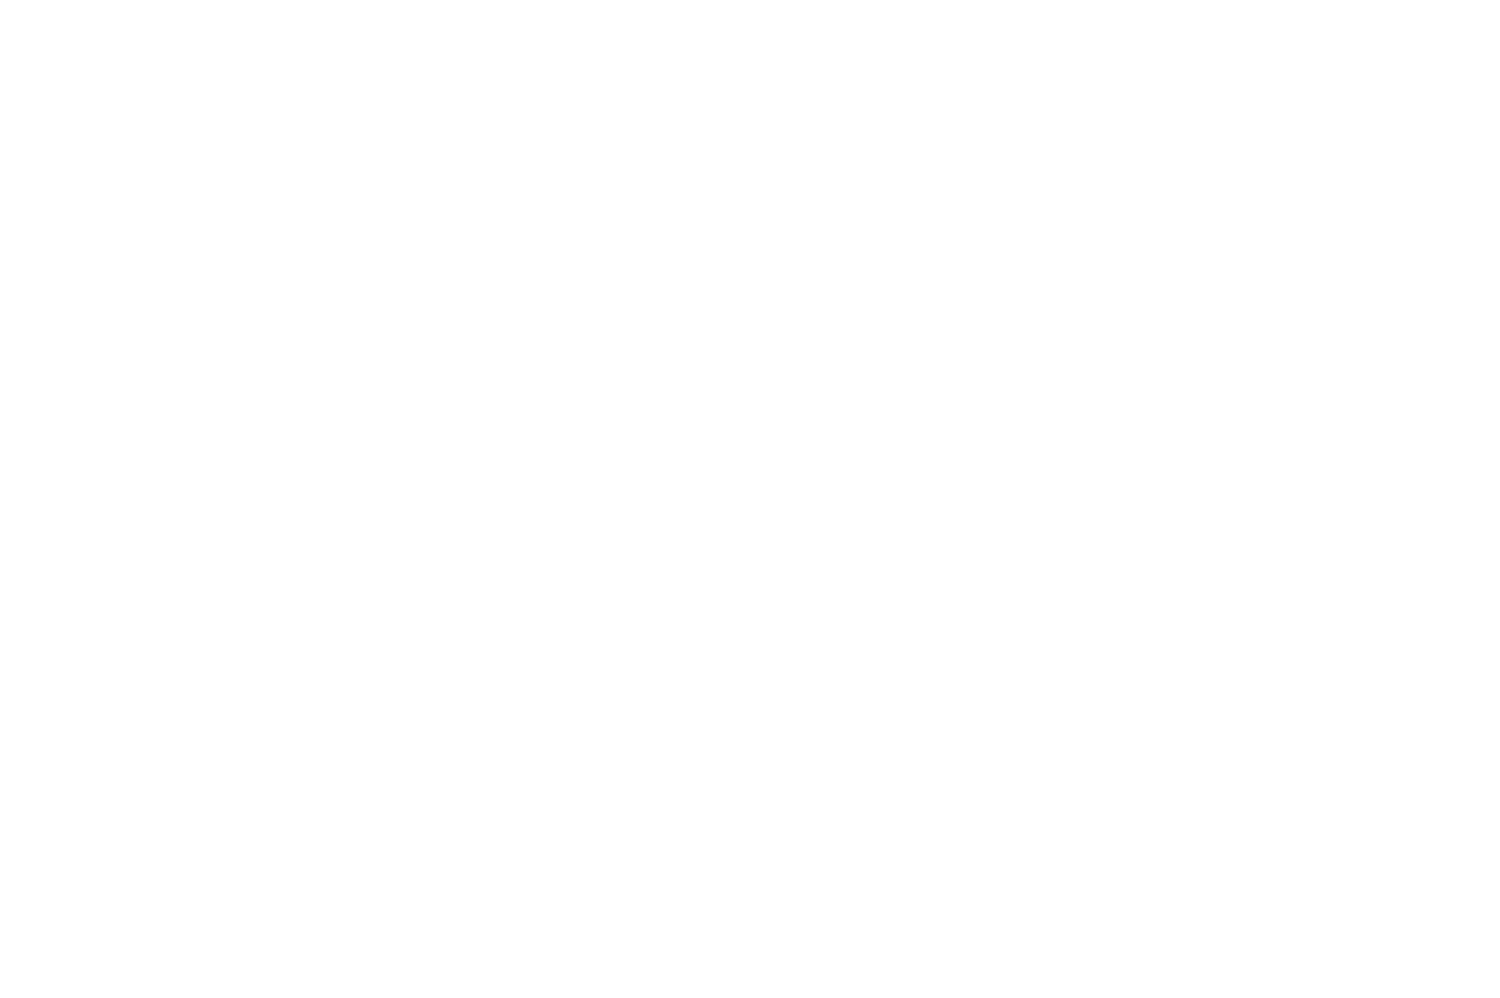 Adonai International Ministries